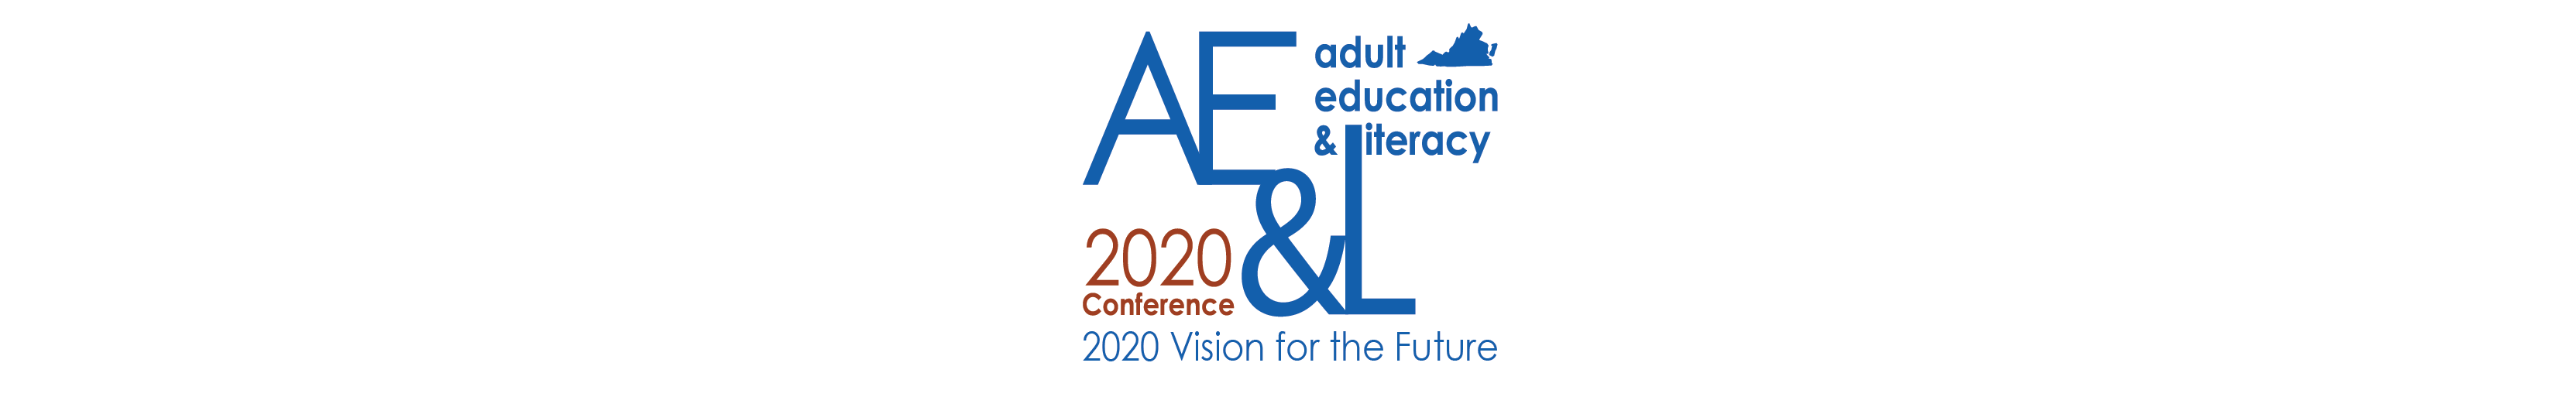 2020 Adult Education and Literacy Conference